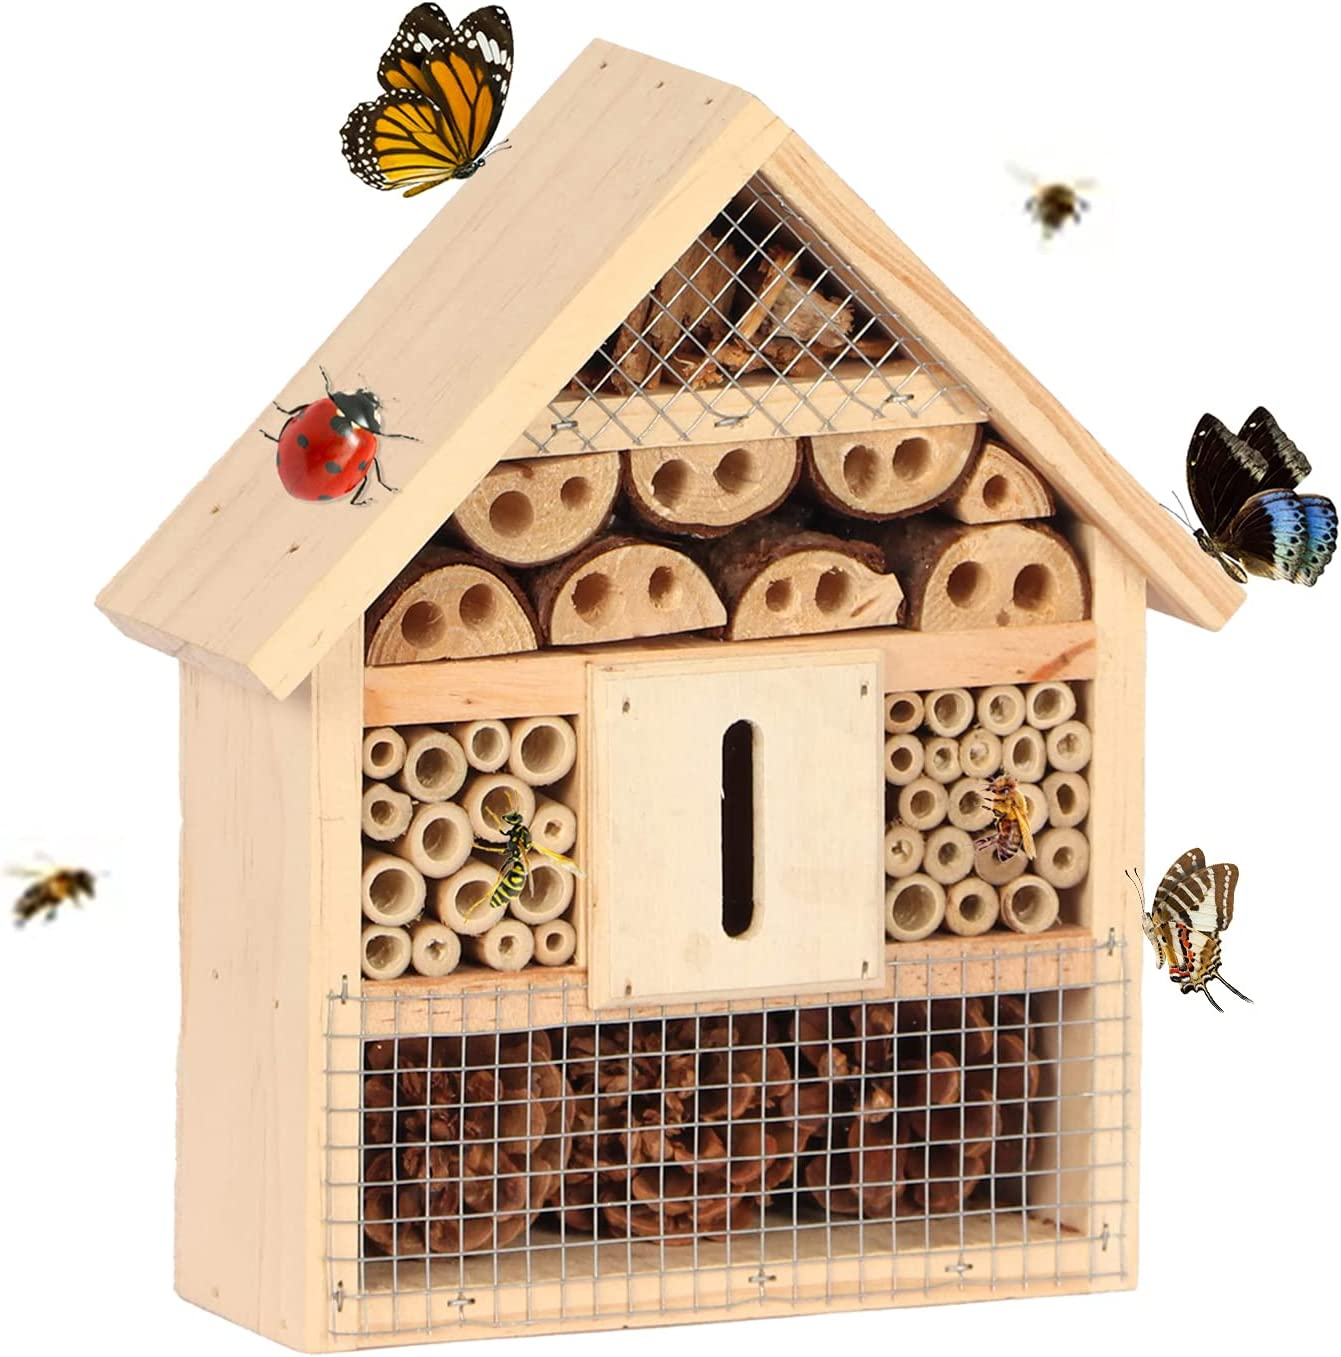 B&P Bee House, Wooden Backyard Hanging Bamboo Tube Insect House Garden Bug Hotel, Perfect Shelter for Bees,Butterflies and Ladybugs